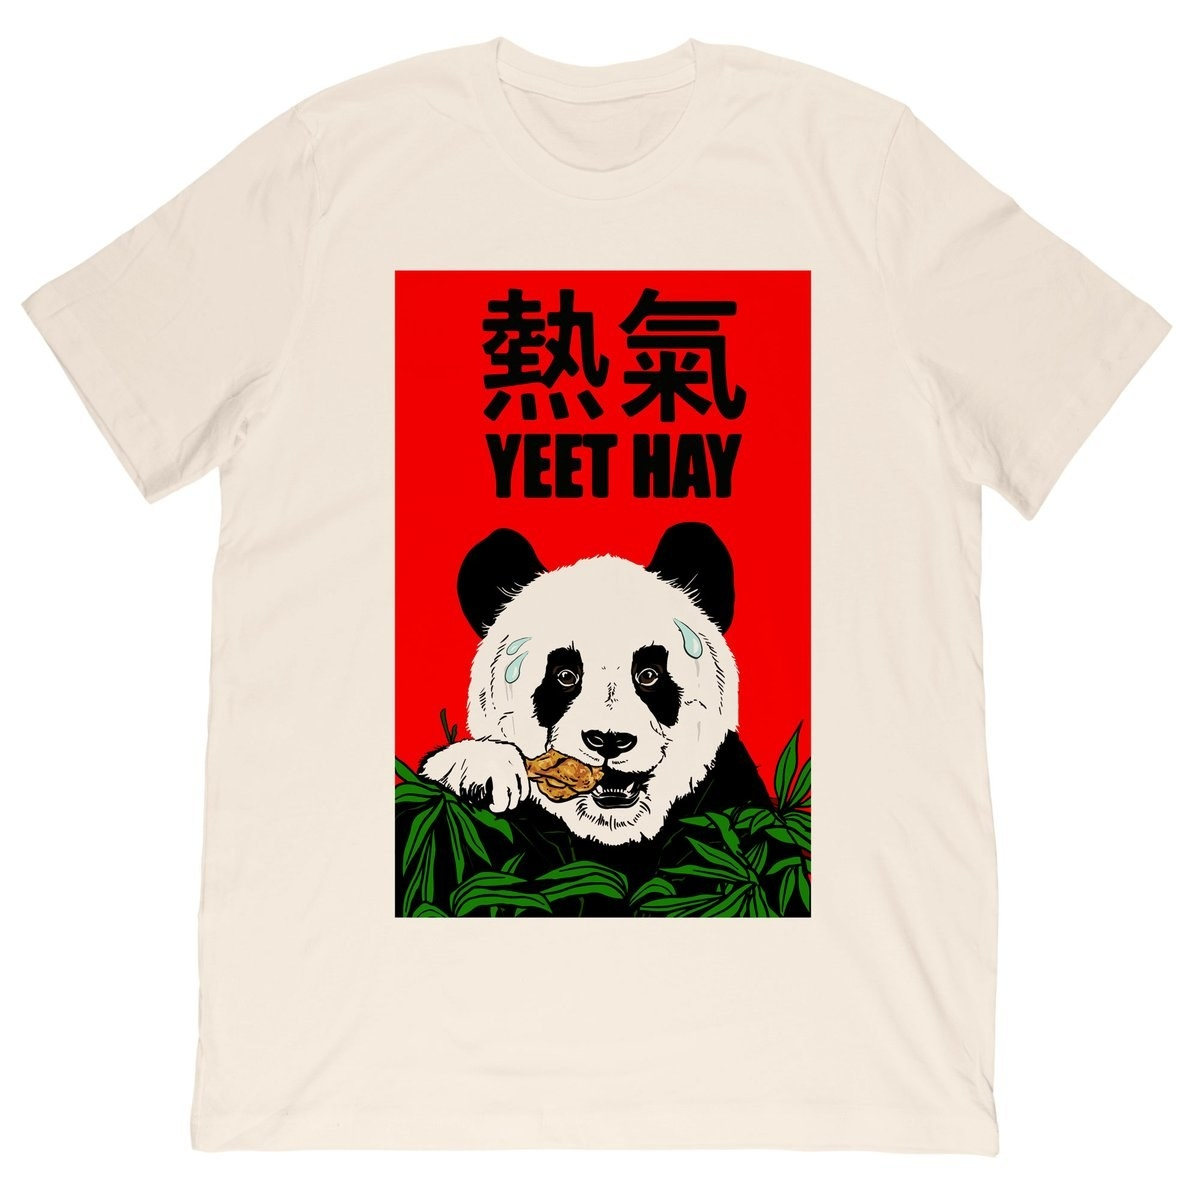 """A t-shirt printed with a panda eating a drumstick and the words """"Yeet Hay"""""""